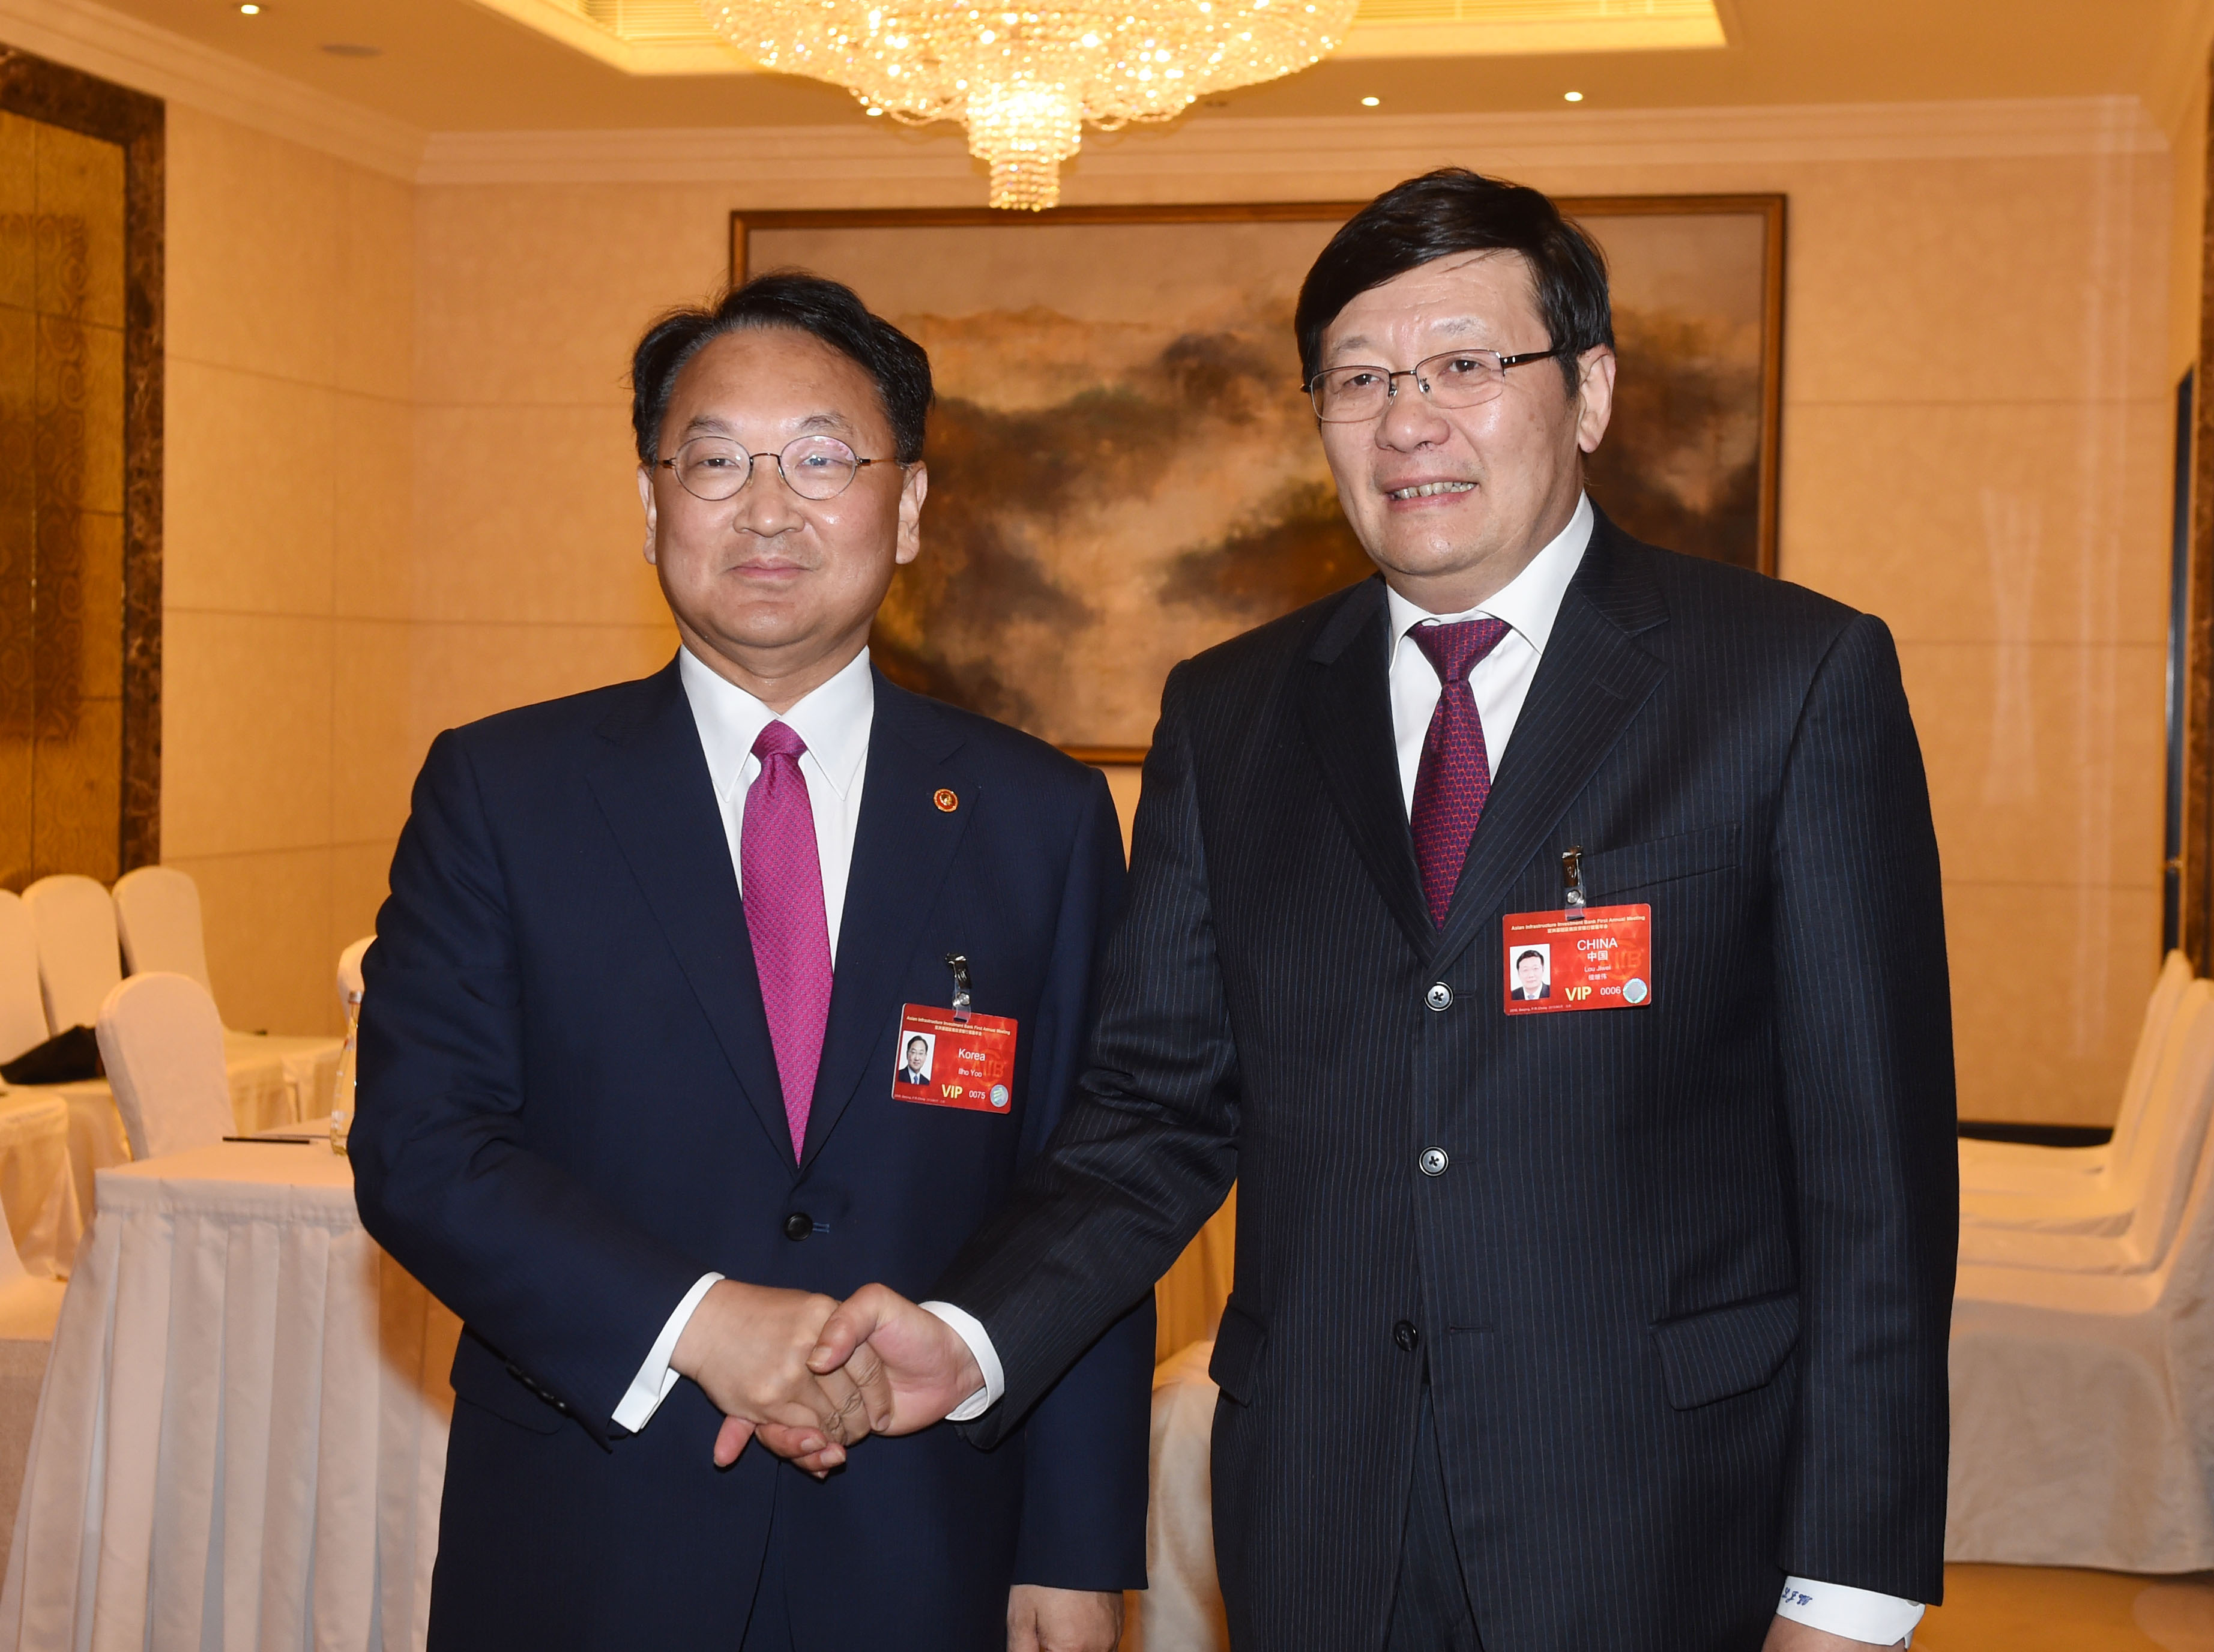 Deputy Prime Minister Yoo meets with Chinese Finance Minister Lou Jiwei in Beijing